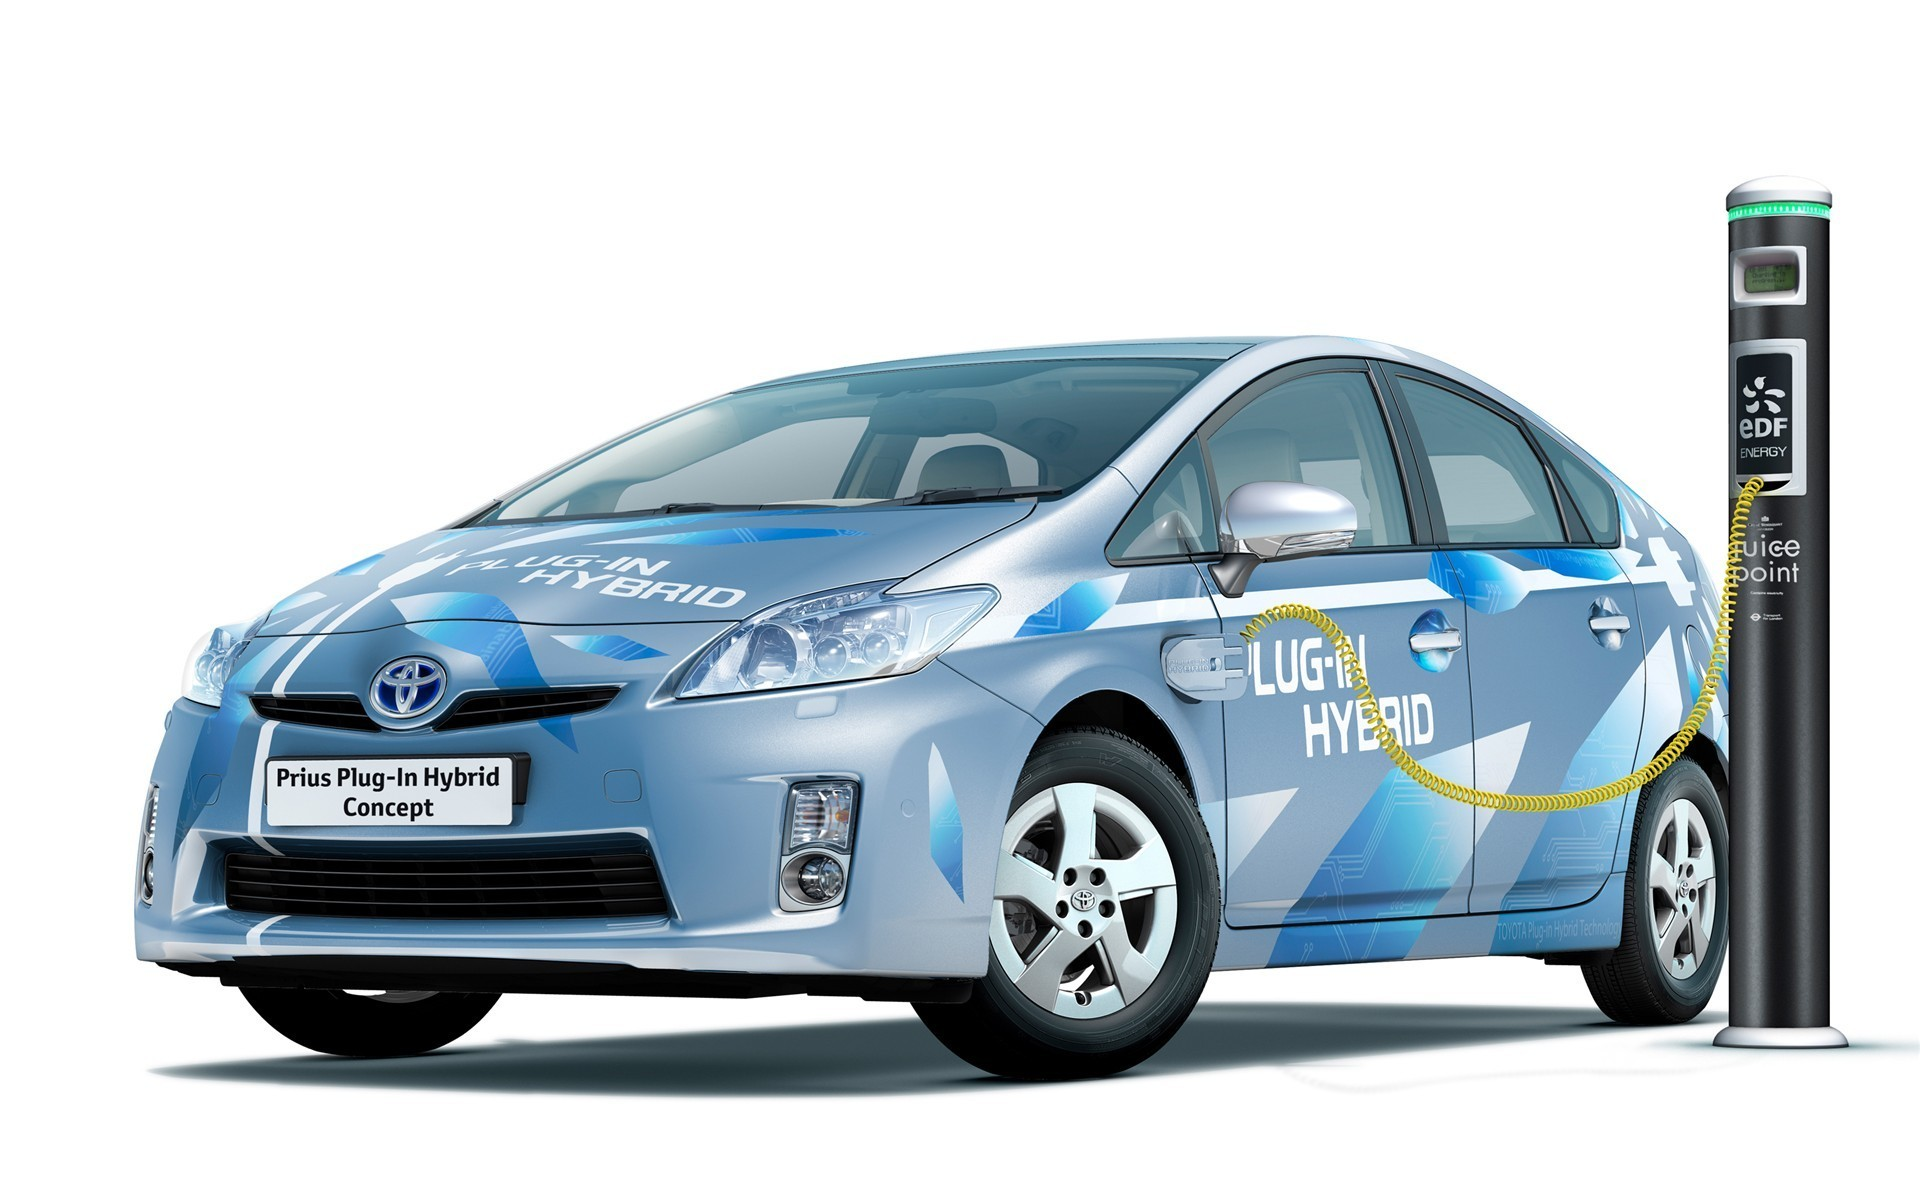 cars vehicles Prius Toyota HD Wallpaper